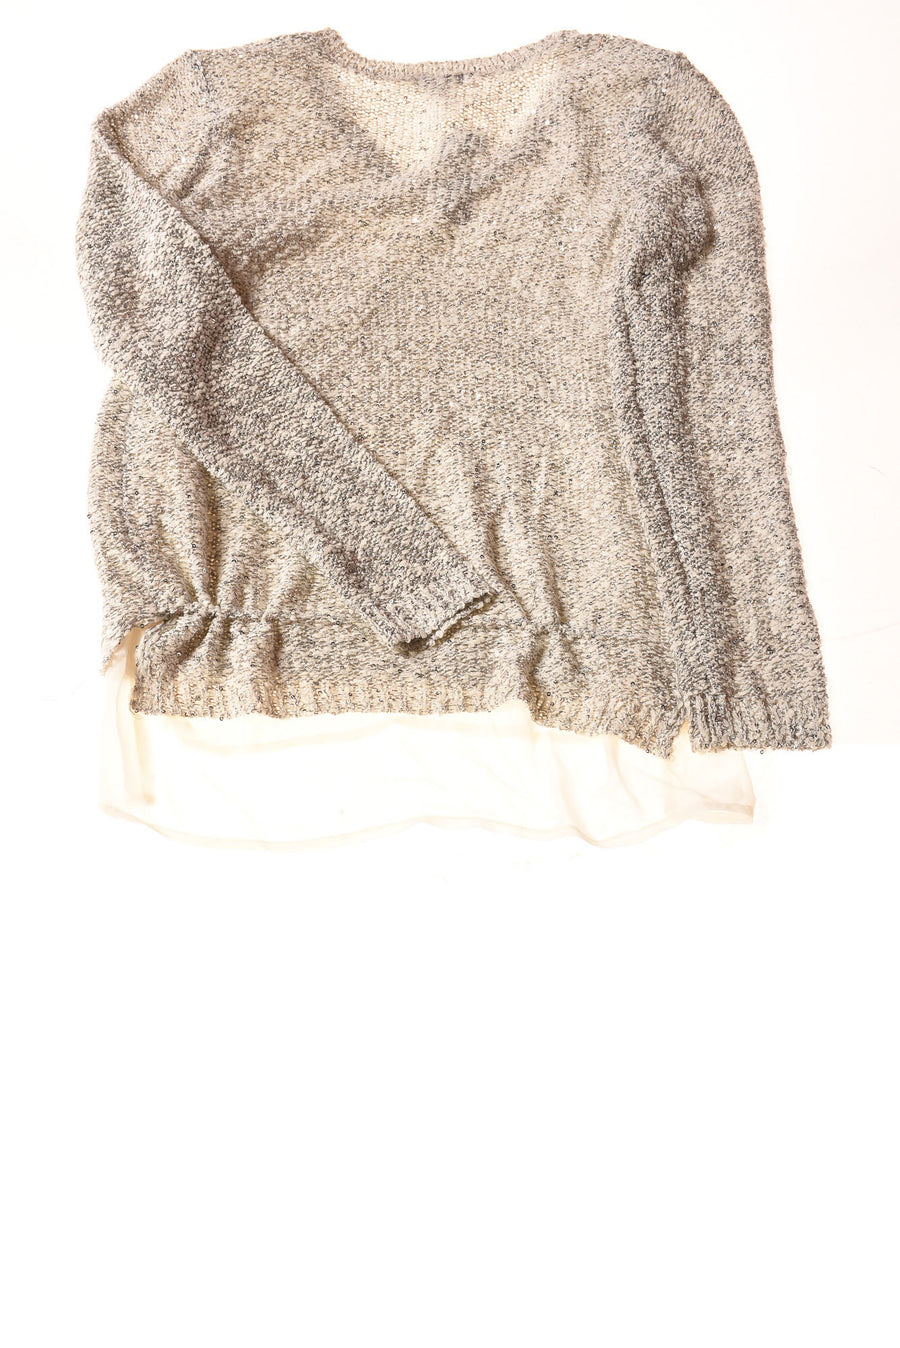 Women's Sweater By Apt 9